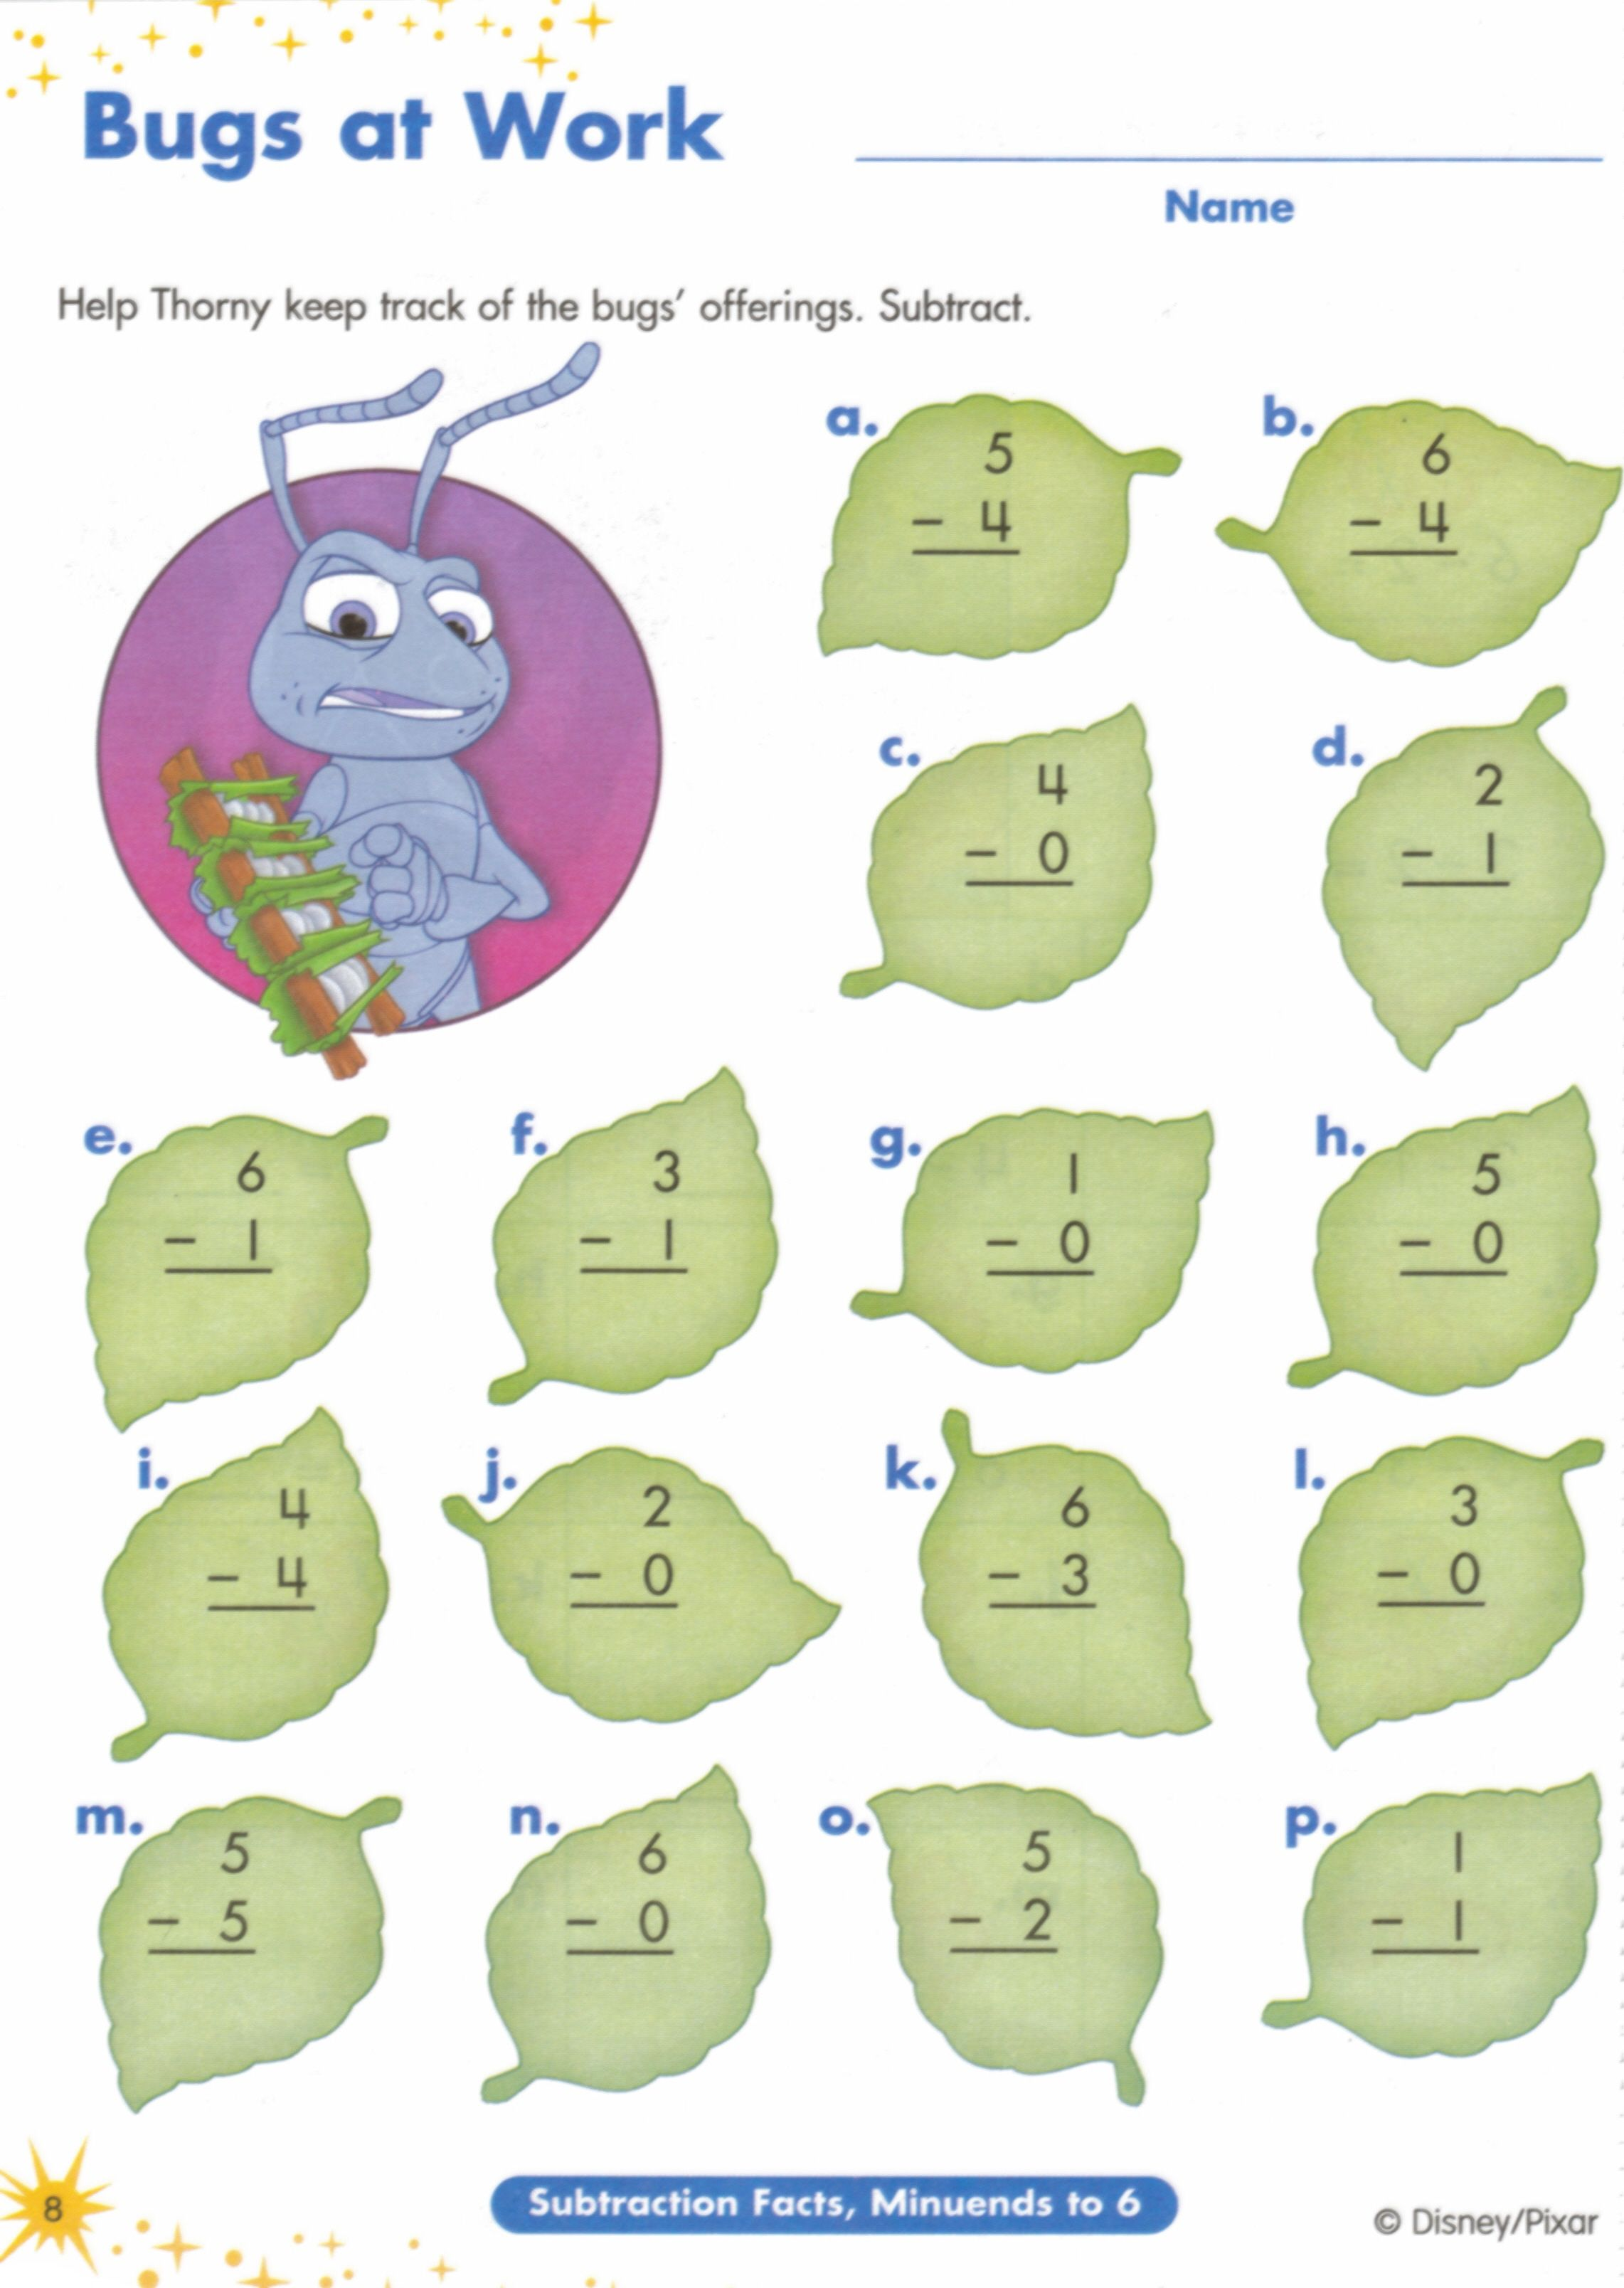 Proatmealus  Personable  Images About Worksheets On Pinterest  Fun Facts For Kids  With Magnificent  Images About Worksheets On Pinterest  Fun Facts For Kids Earth Day Worksheets And Jungles With Divine Adverbs Of Place Worksheets Also Using A An And The Worksheets In Addition Dotted Alphabet Worksheet And Myths And Legends Worksheets As Well As Unjumble Words Worksheets Additionally Add And Subtract Money Worksheets From Pinterestcom With Proatmealus  Magnificent  Images About Worksheets On Pinterest  Fun Facts For Kids  With Divine  Images About Worksheets On Pinterest  Fun Facts For Kids Earth Day Worksheets And Jungles And Personable Adverbs Of Place Worksheets Also Using A An And The Worksheets In Addition Dotted Alphabet Worksheet From Pinterestcom